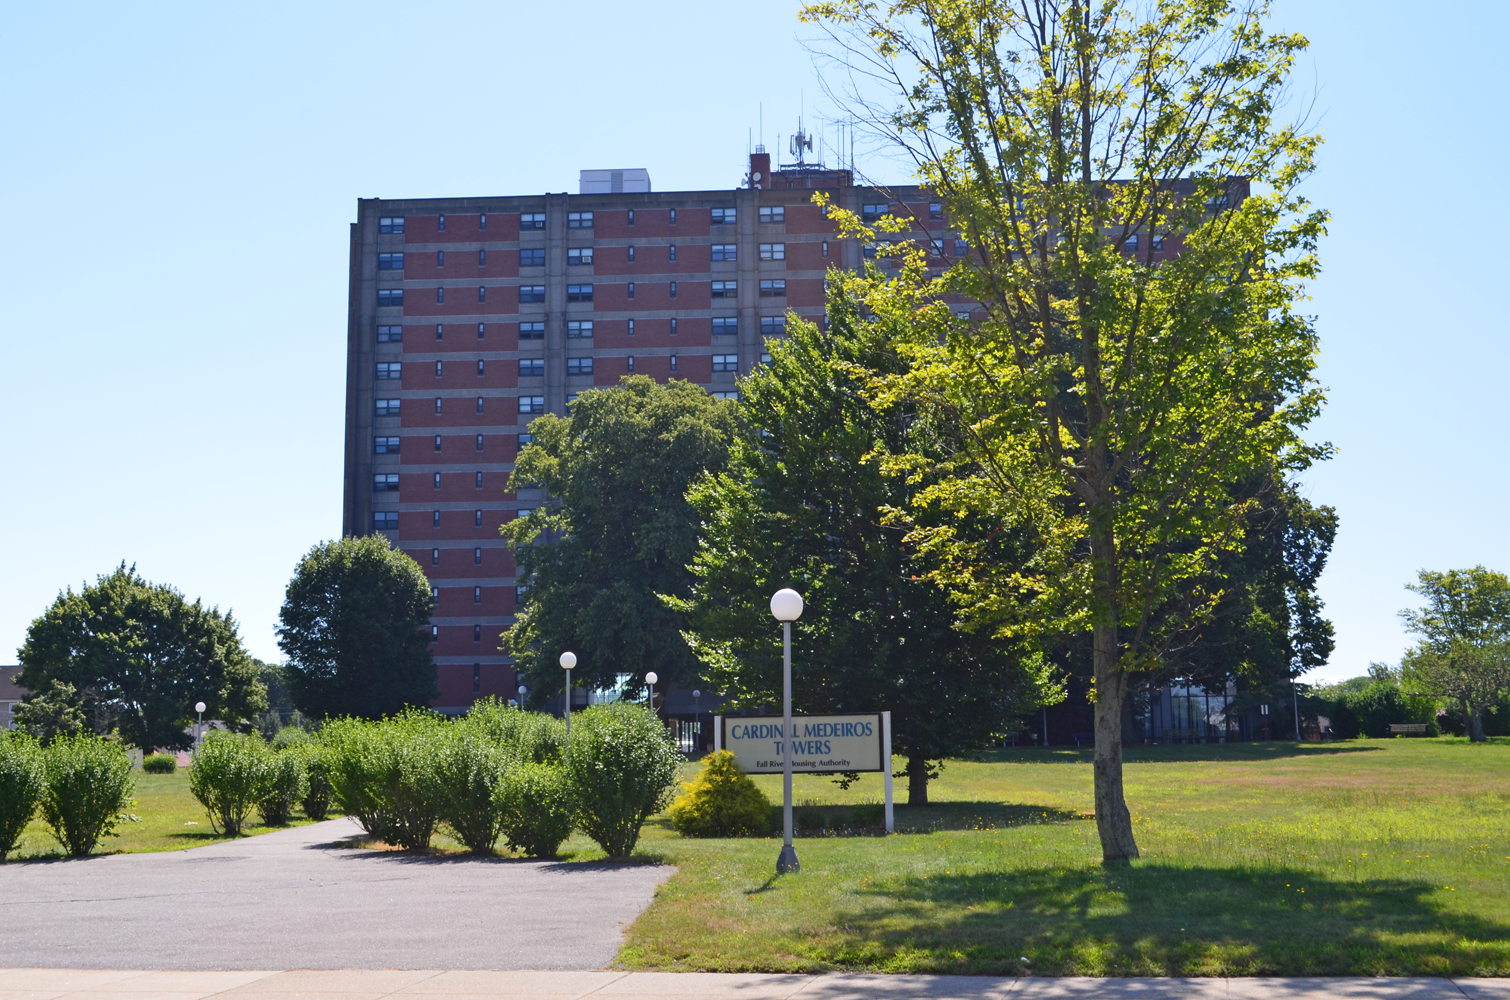 Image of Cardinal Medeiros Towers in Fall River, Massachusetts